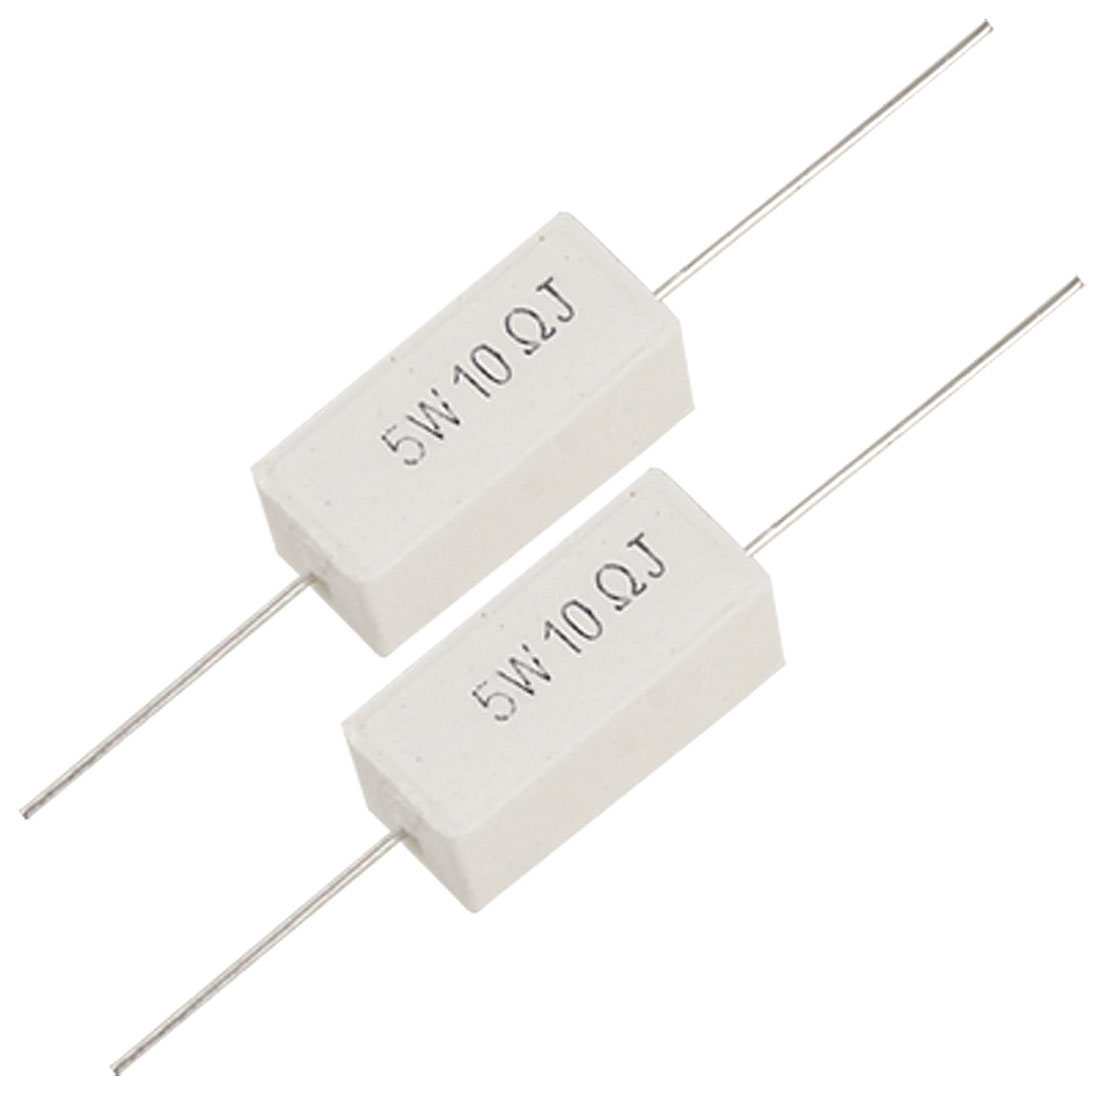 5W 10 Ohm 5% Wirewound Cement Power Resistors x 10 Pcs